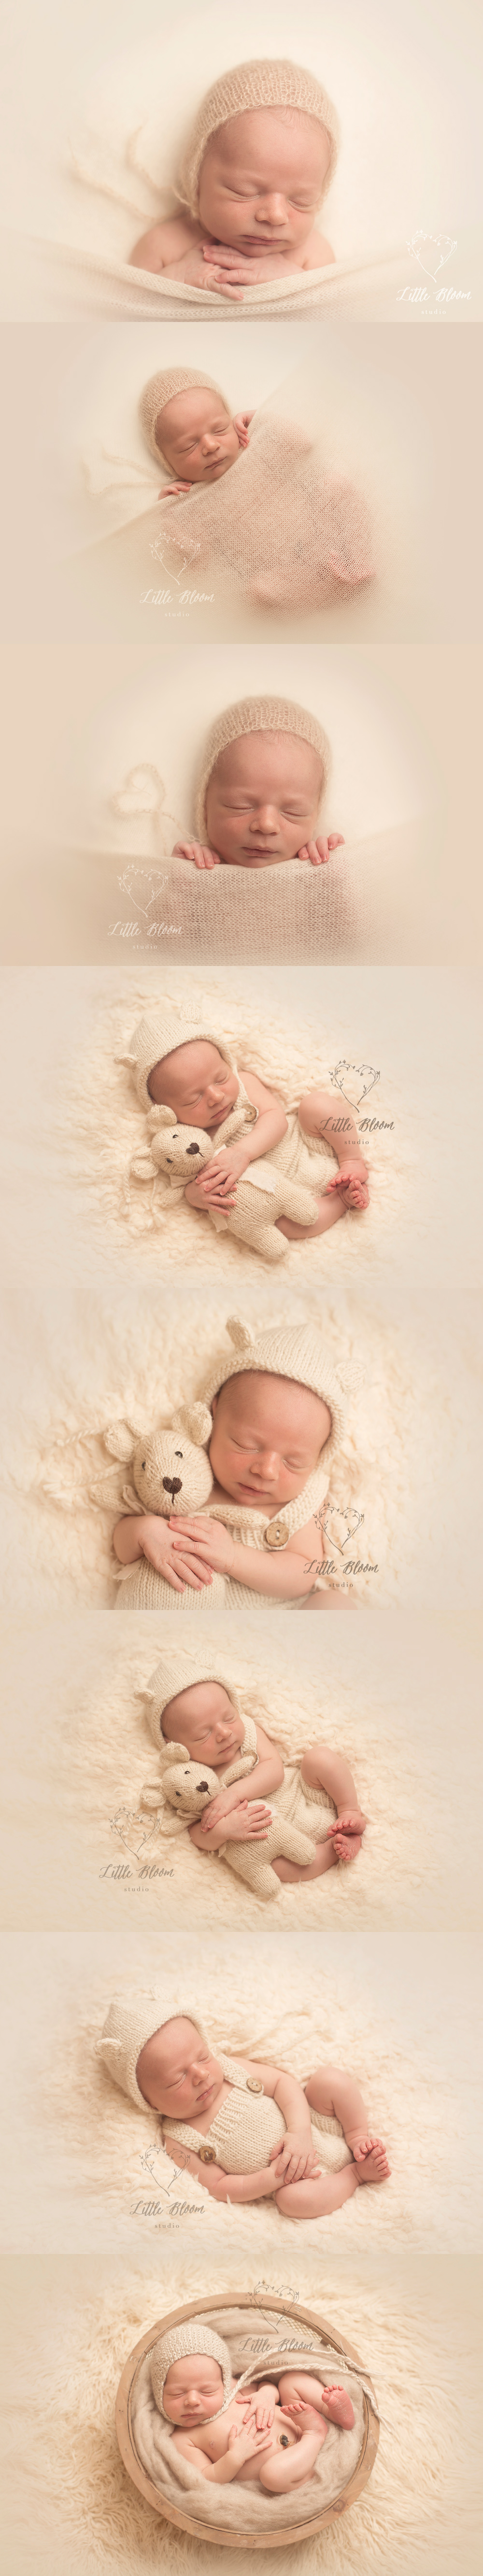 Asheville_newborn_photography.jpg